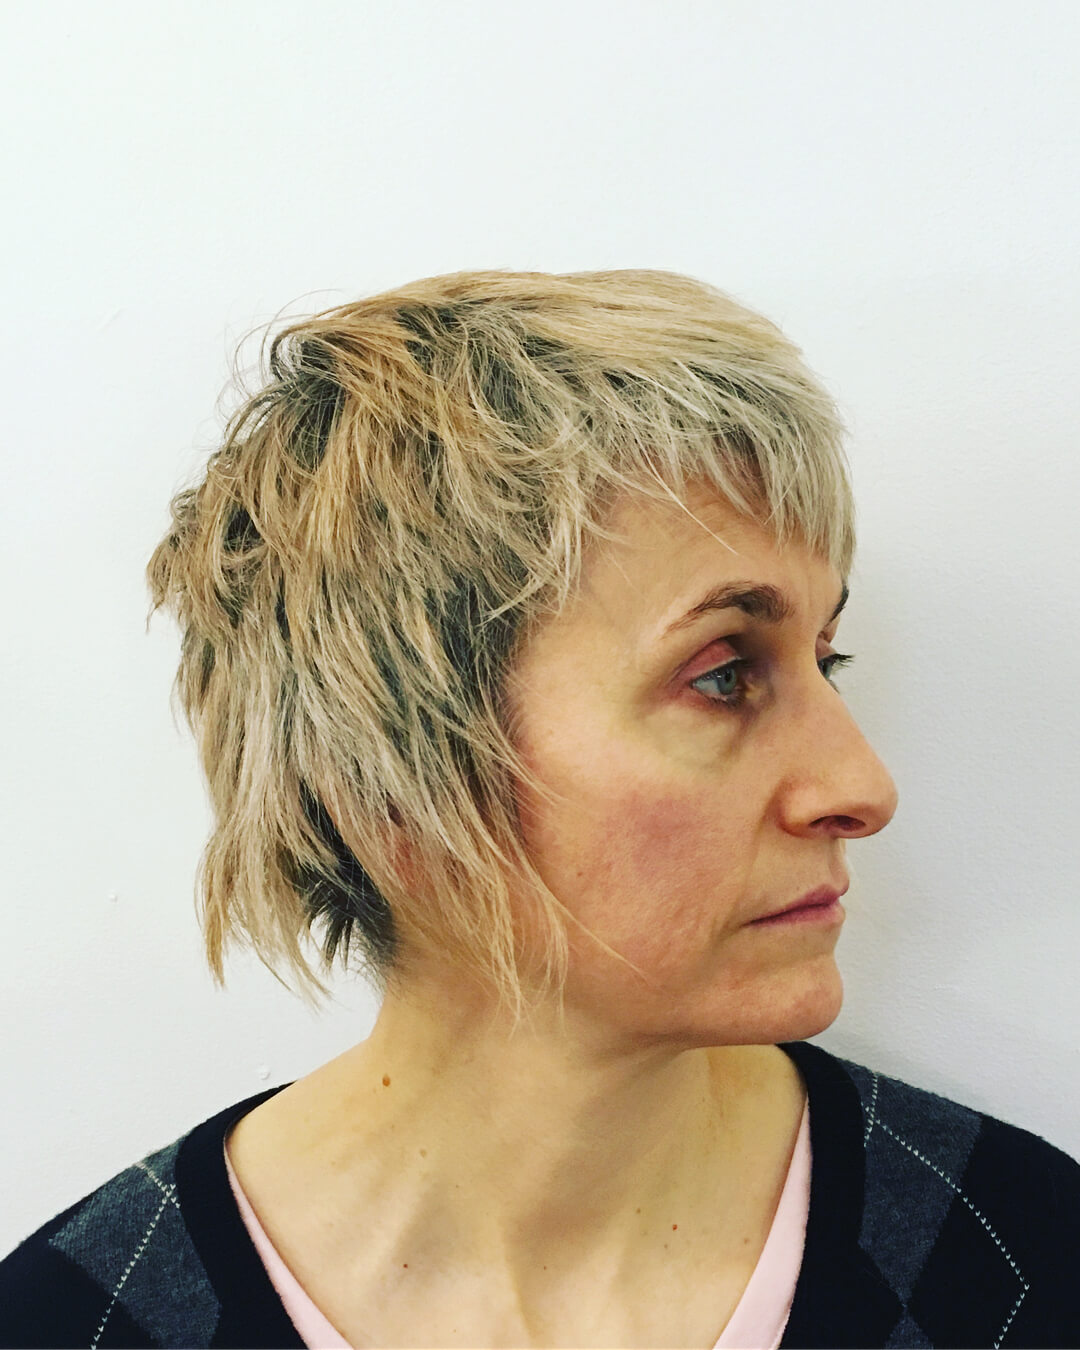 https://zhurnal-lady.com/wp-content/uploads/2019/12/shaggy-hairstyles-for-women-over-50-45.jpg